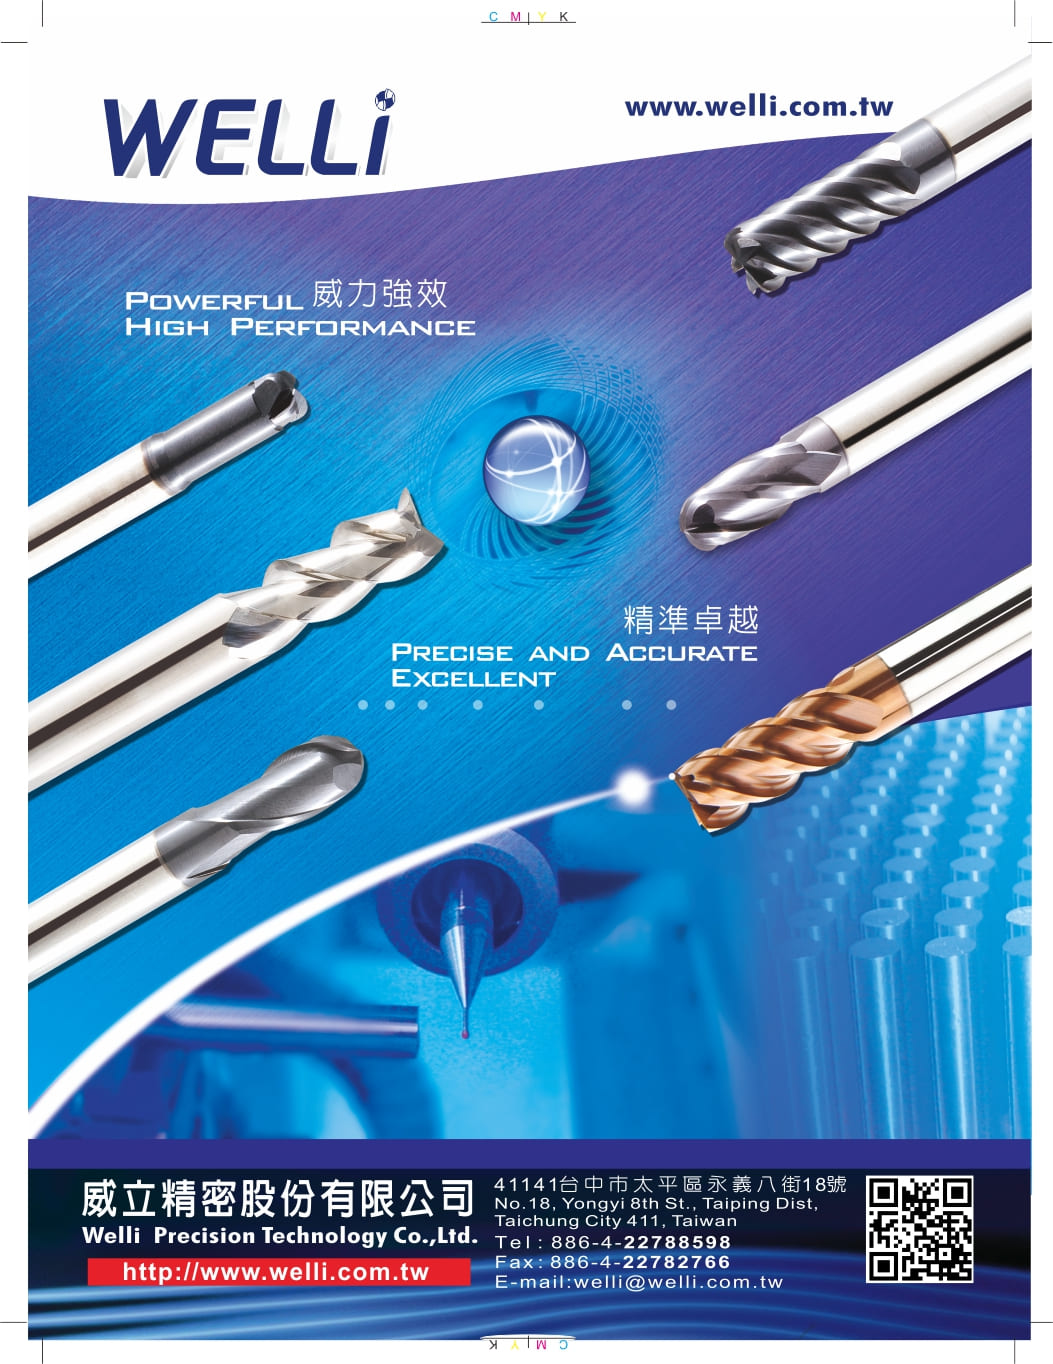 WELLI PRECISION TECHNOLOGY CO., LTD.